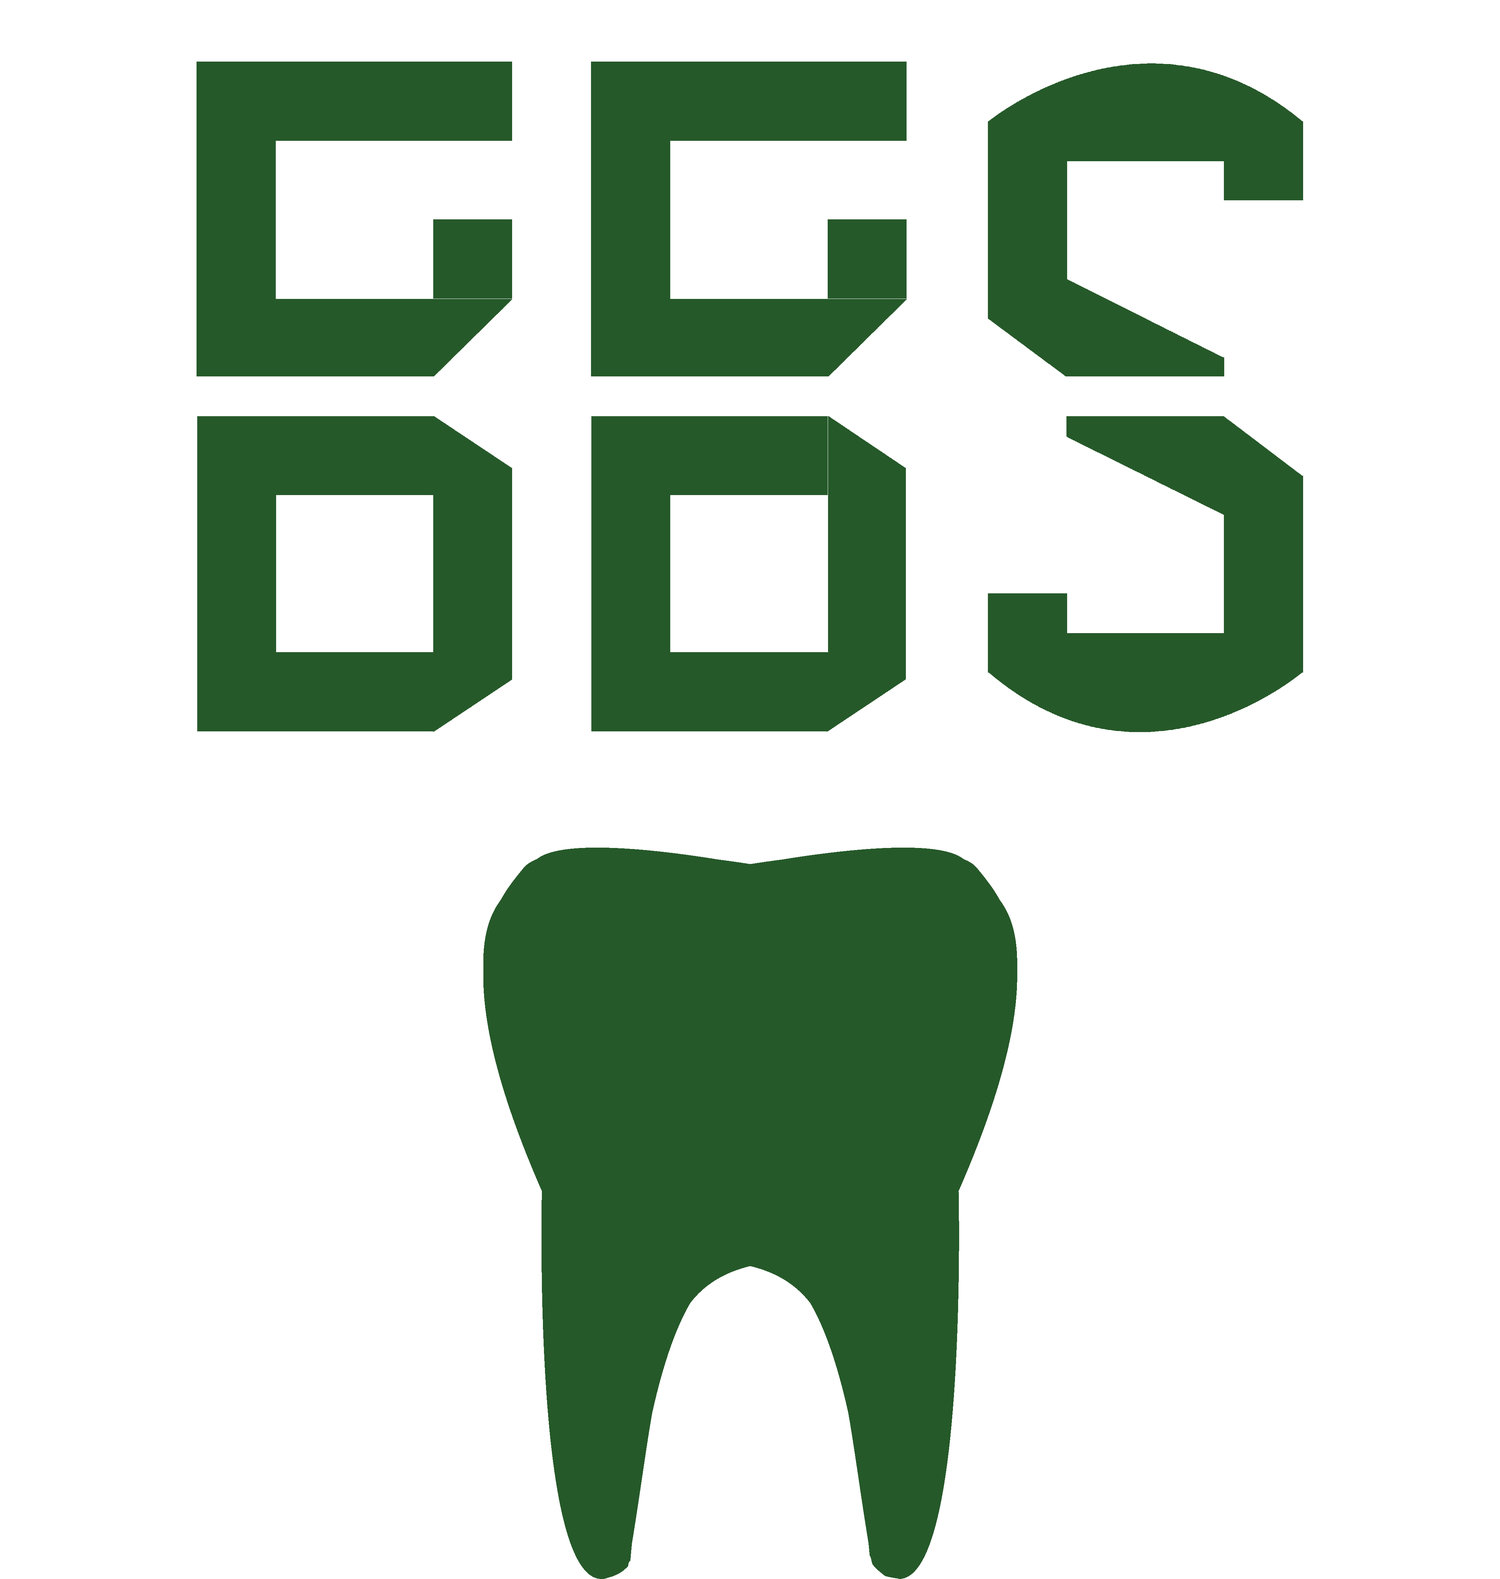 Gregory G. Smith, DDS